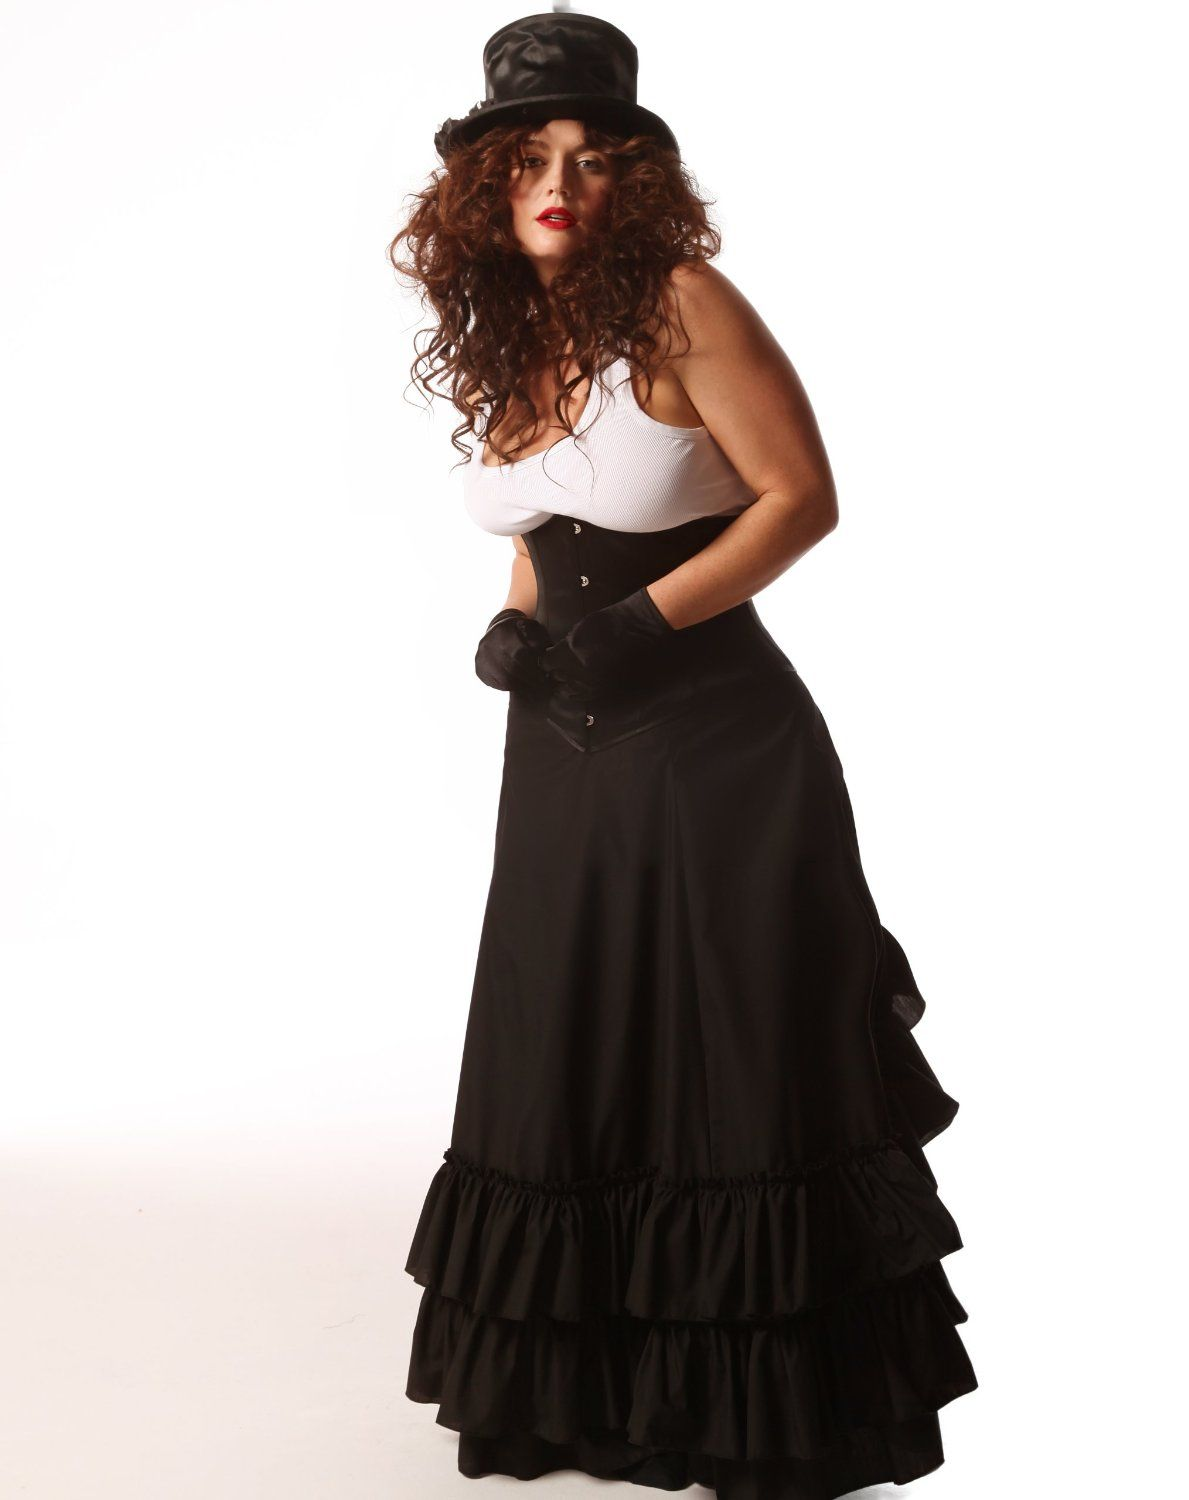 where can you find steampunk clothing in plus sizes it